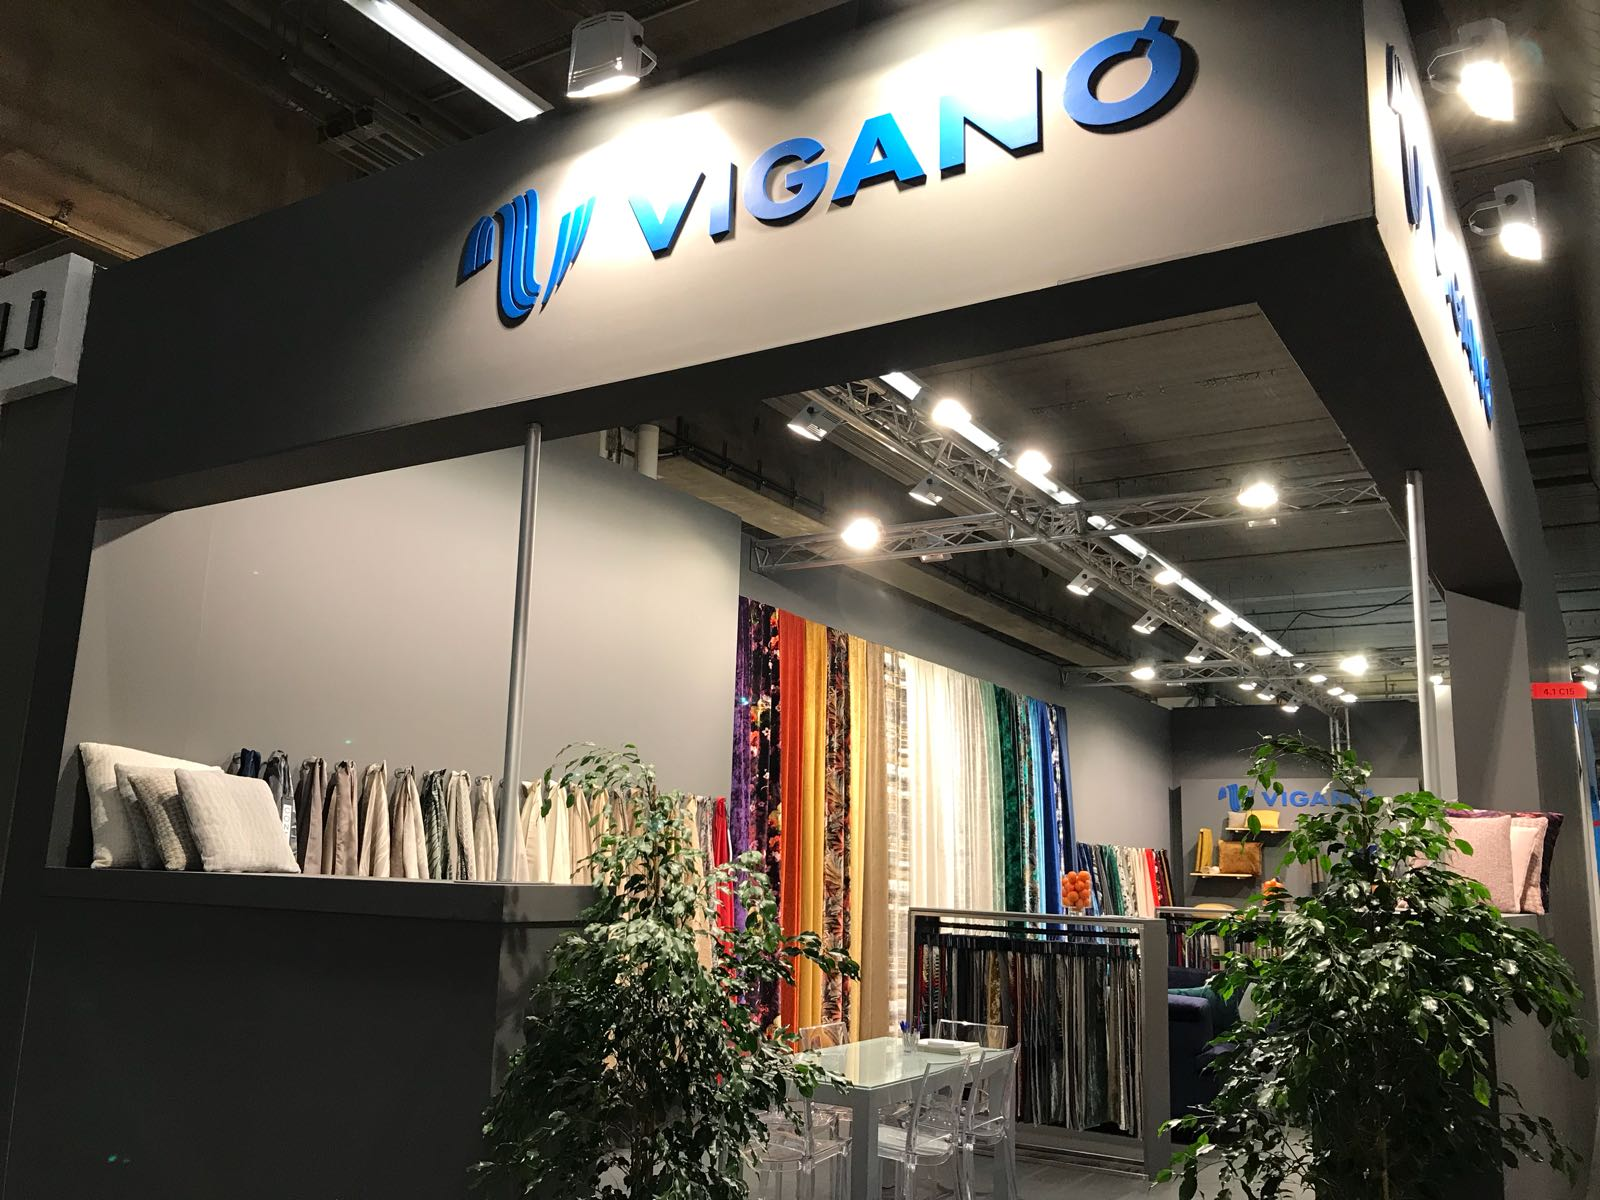 Fairs - Viganò s.p.a. exhibits in the most important textile fairs around the world.